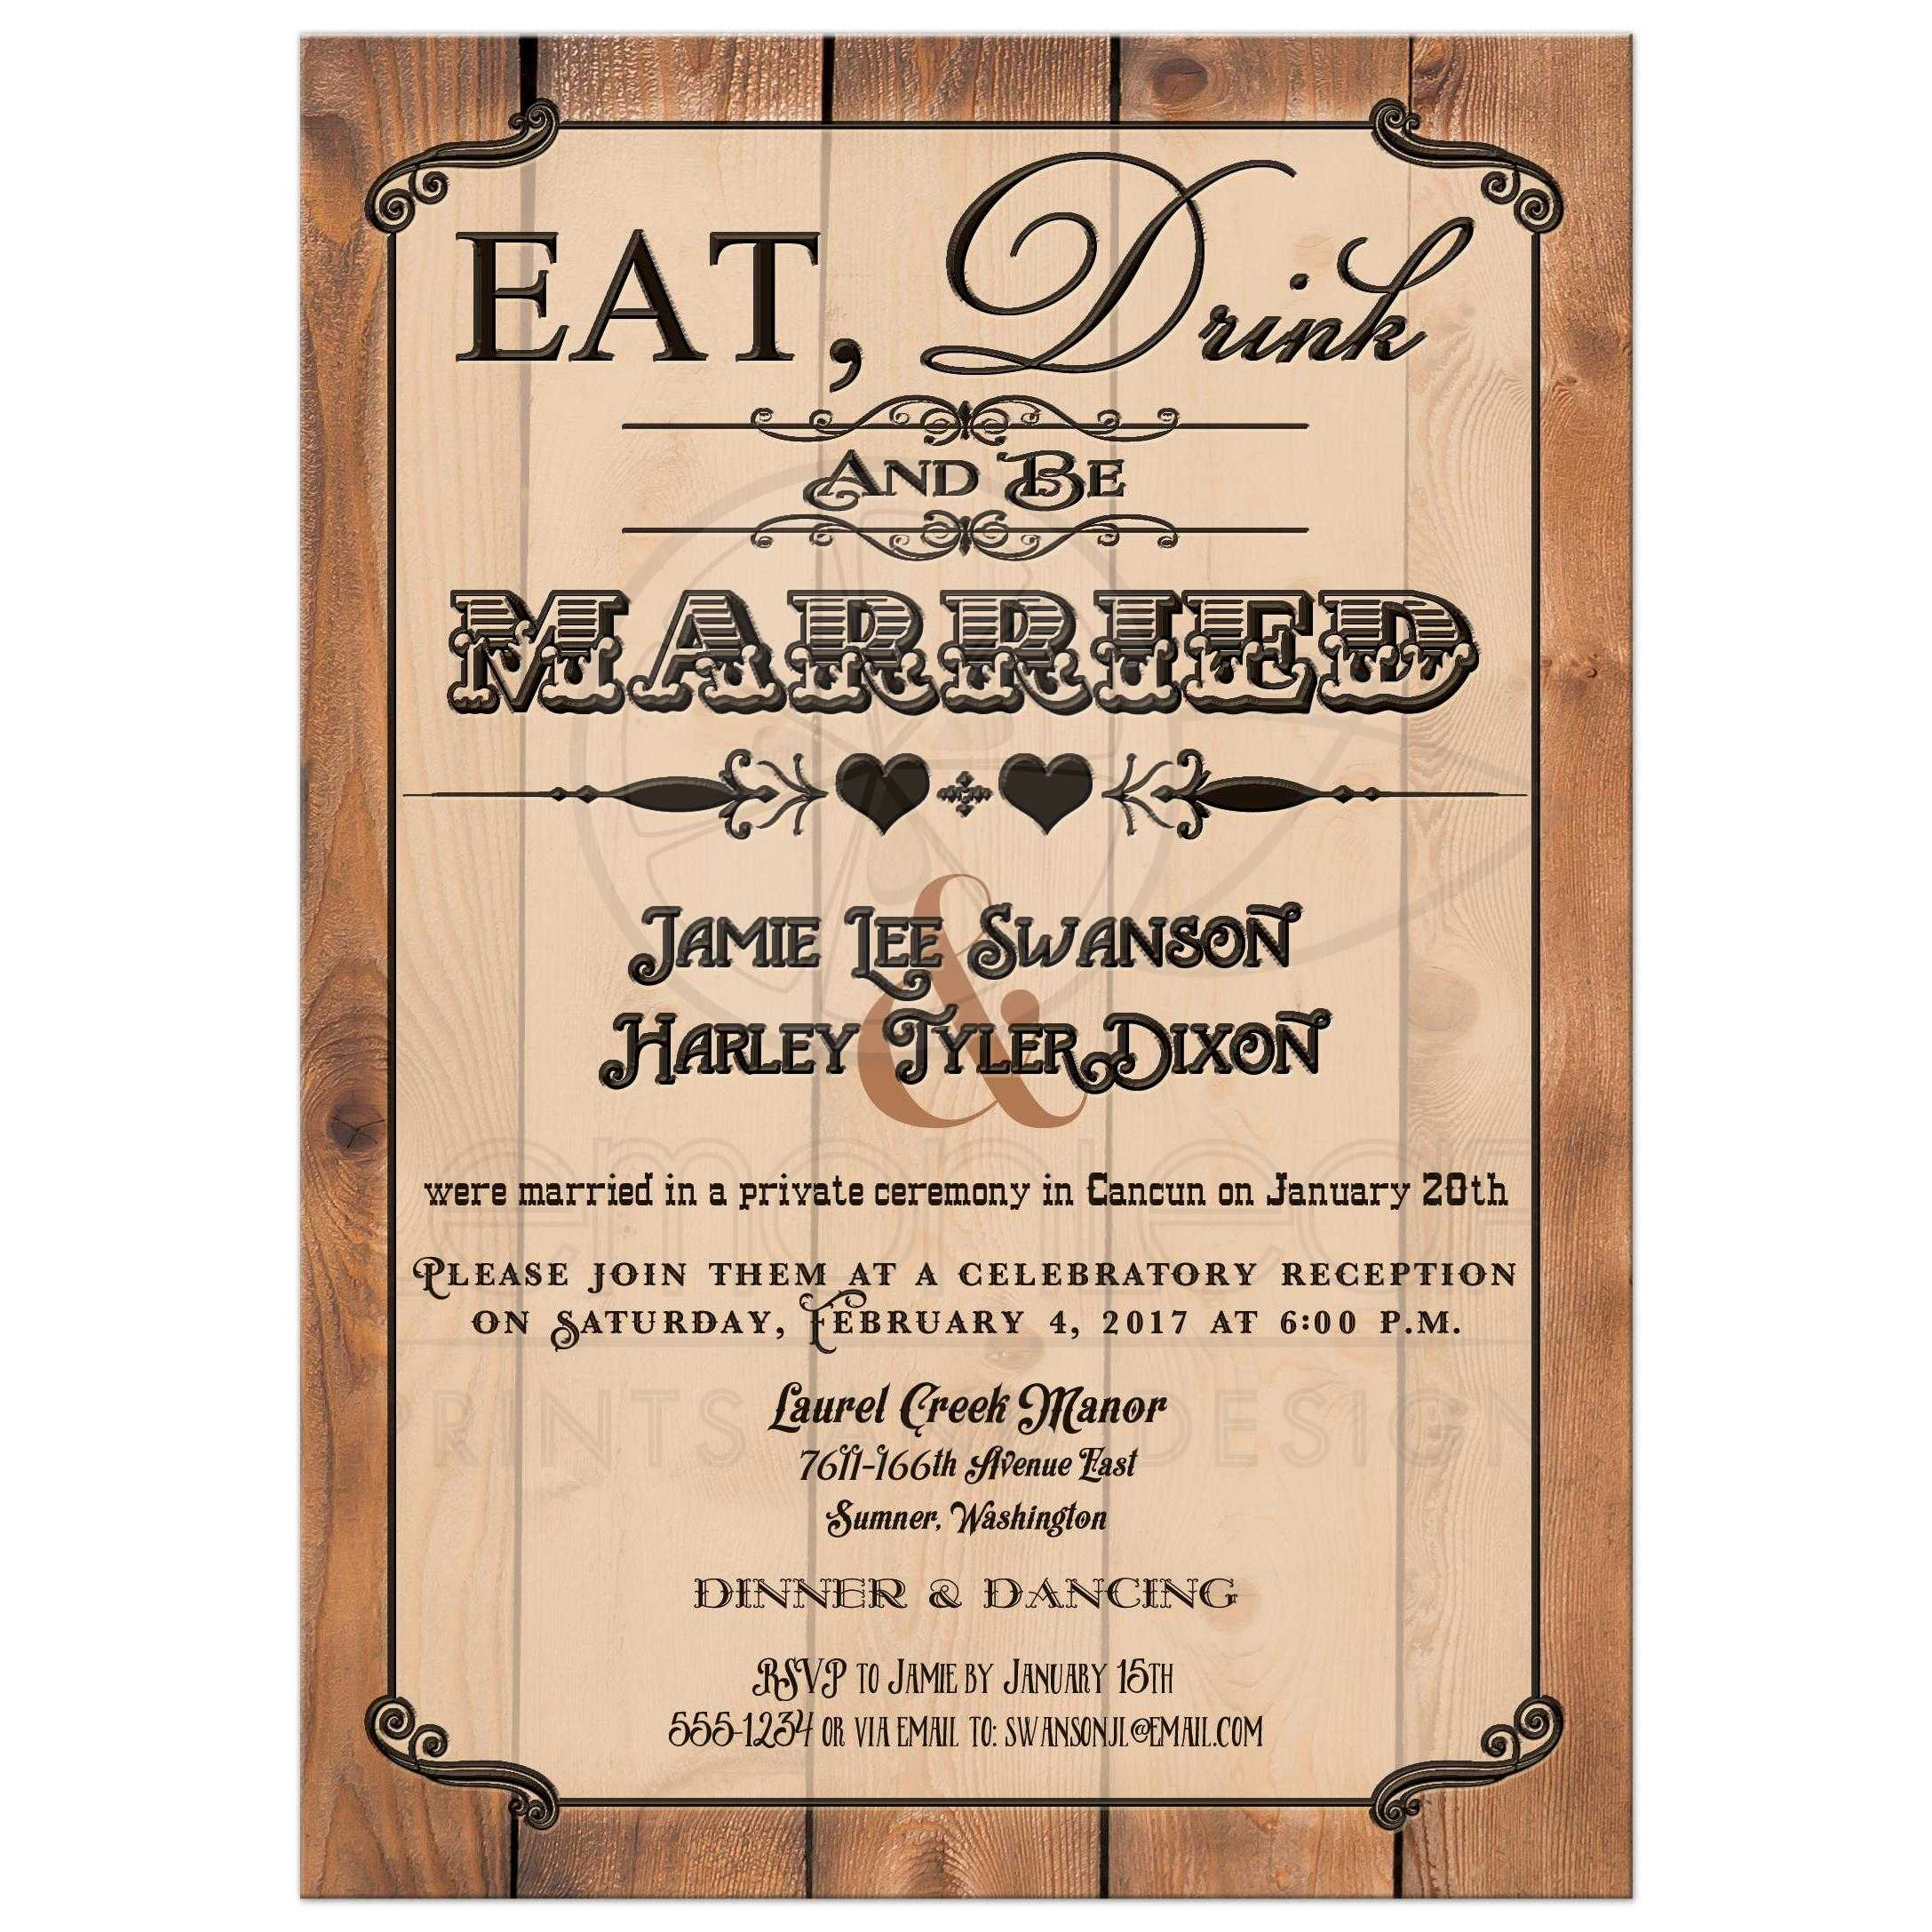 great eat drink and be married vintage poster style post wedding reception only invites with - Post Wedding Reception Invitation Wording